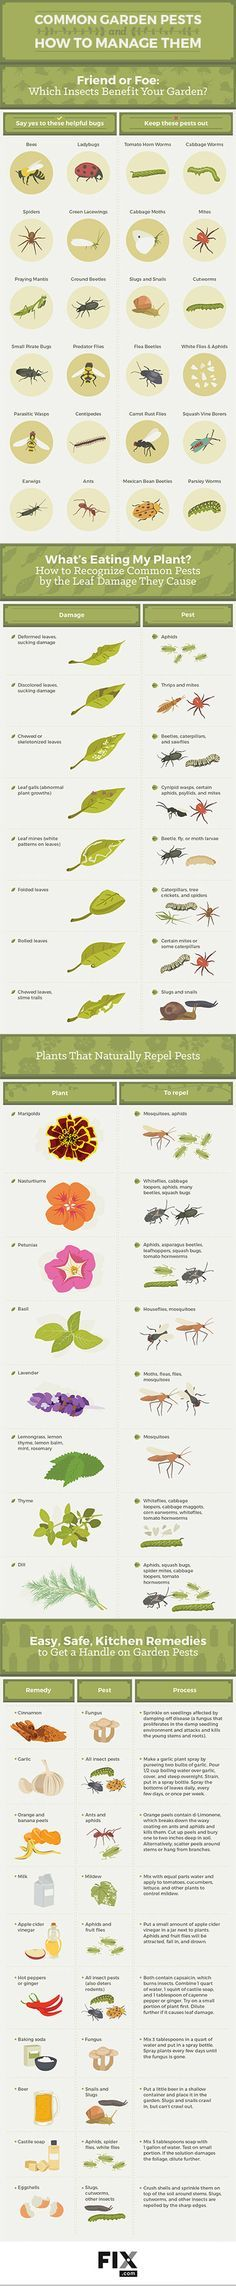 Gardening Cheat Sheets - Good and bad bugs. (click thru for lots more GCS) / The Garden Glove